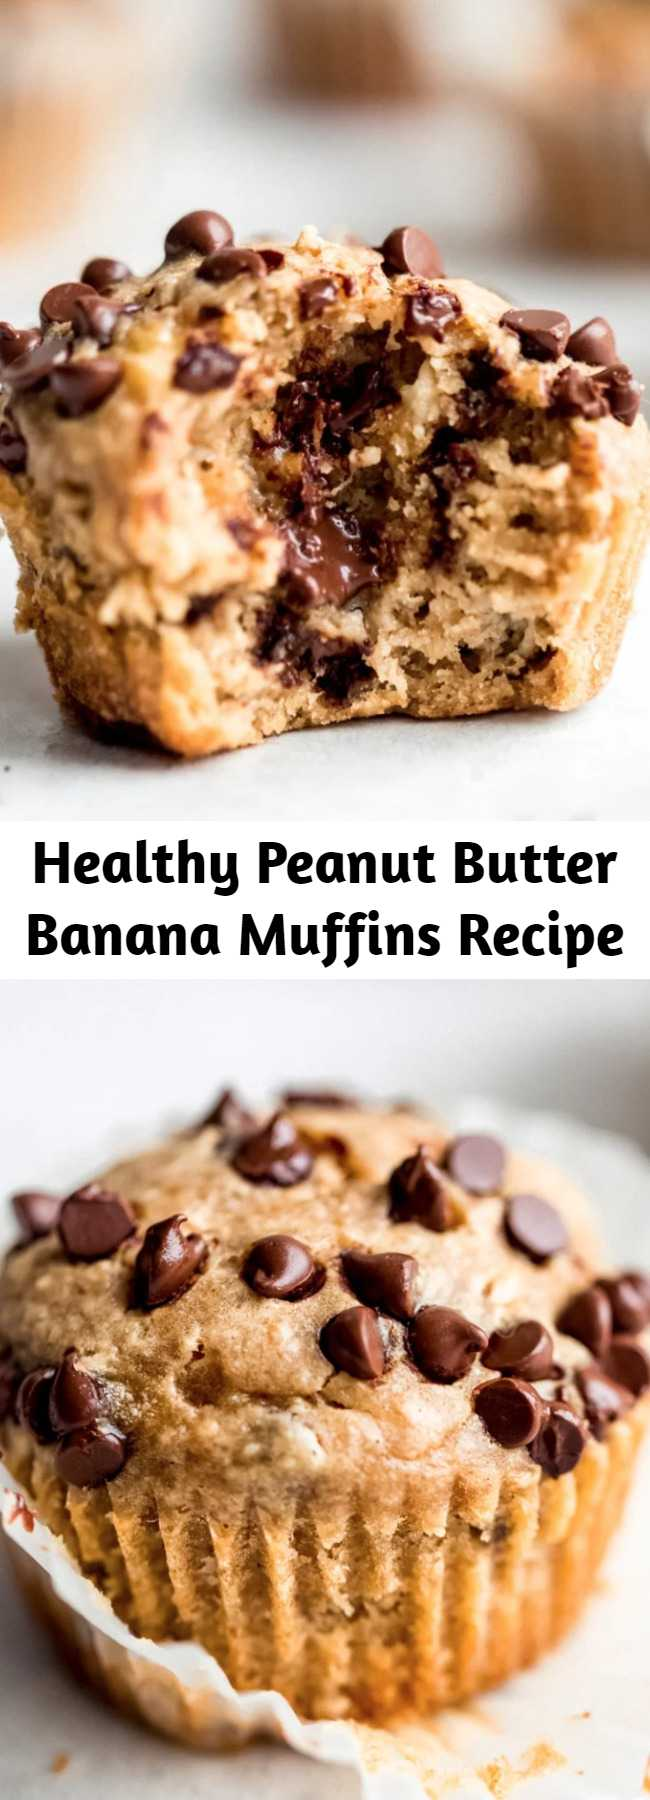 Healthy Peanut Butter Banana Muffins Recipe - The BEST peanut butter banana muffins that are packed with protein and peanut butter flavor. Naturally sweetened with pure maple syrup, gluten free thanks to oat flour and a great on-the-go healthy breakfast or snack. Try them with mini chocolate chips! #glutenfree #glutenfreesnack #dairyfree #kidfriendly #kidfood #muffins #muffinrecipe #peanutbutter #healthysnack